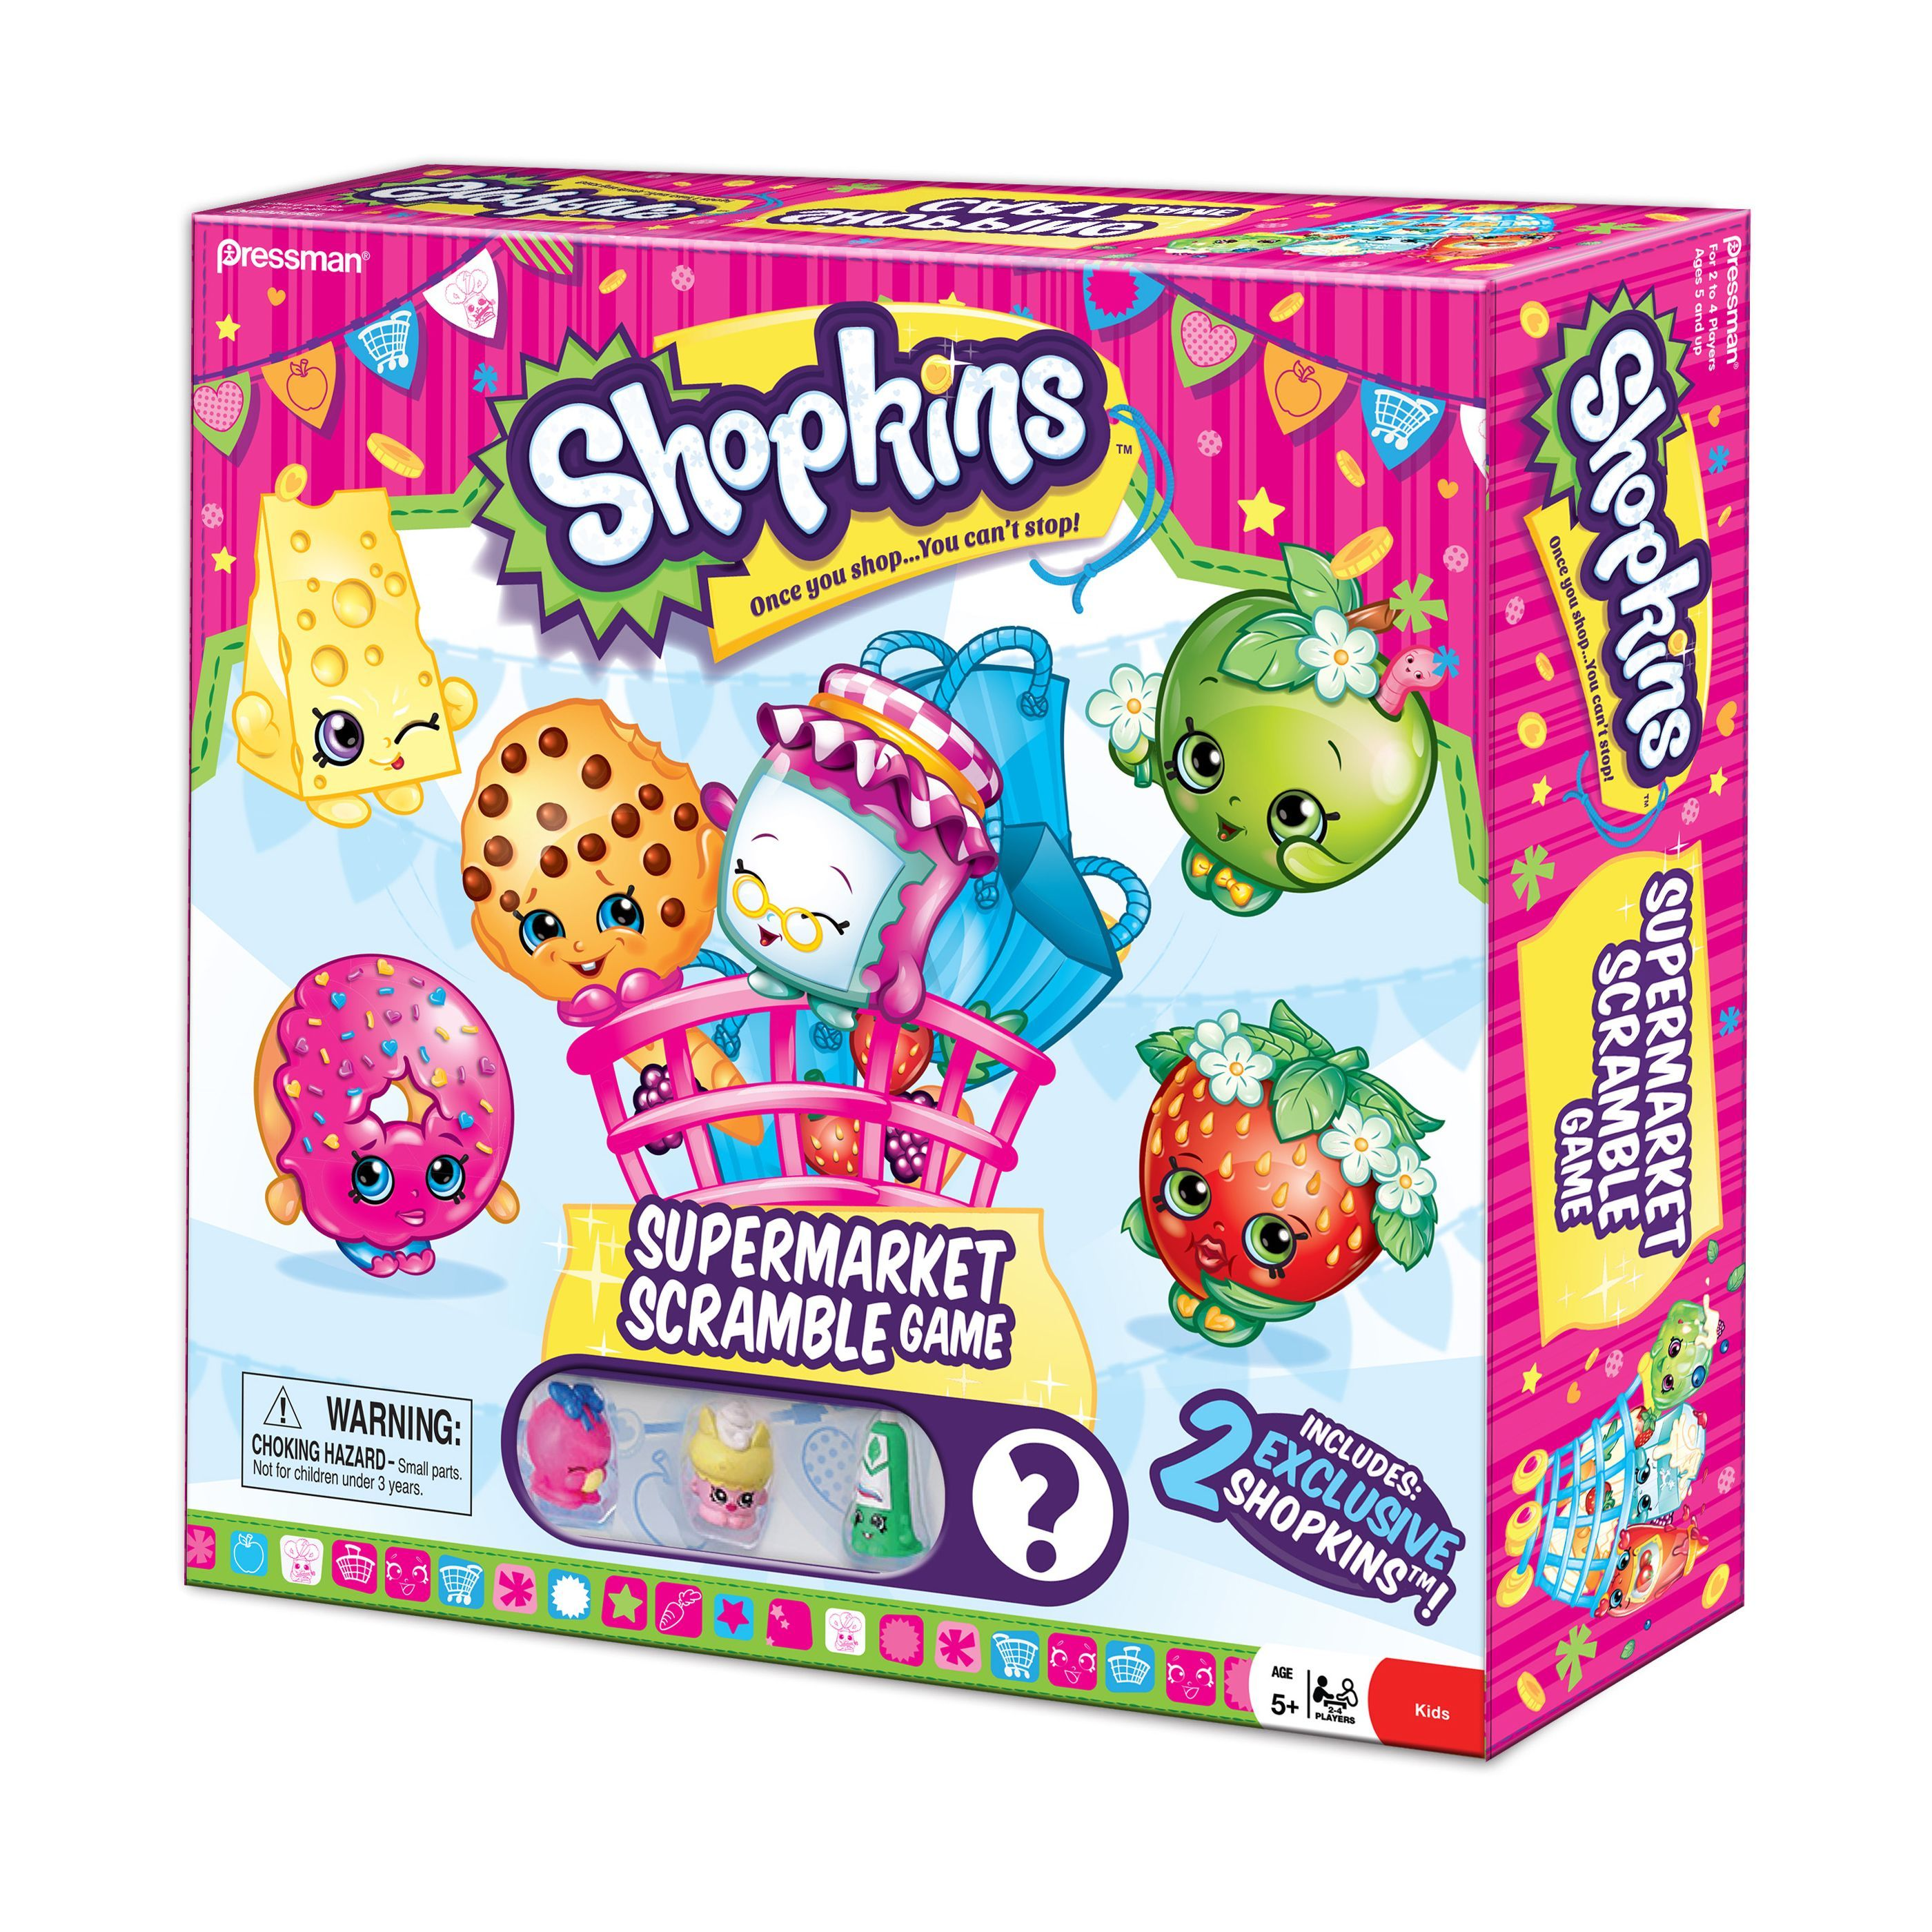 SHOPKINS Make A Match Memory Game With 1 Exclusive Shopkins Miss Candy